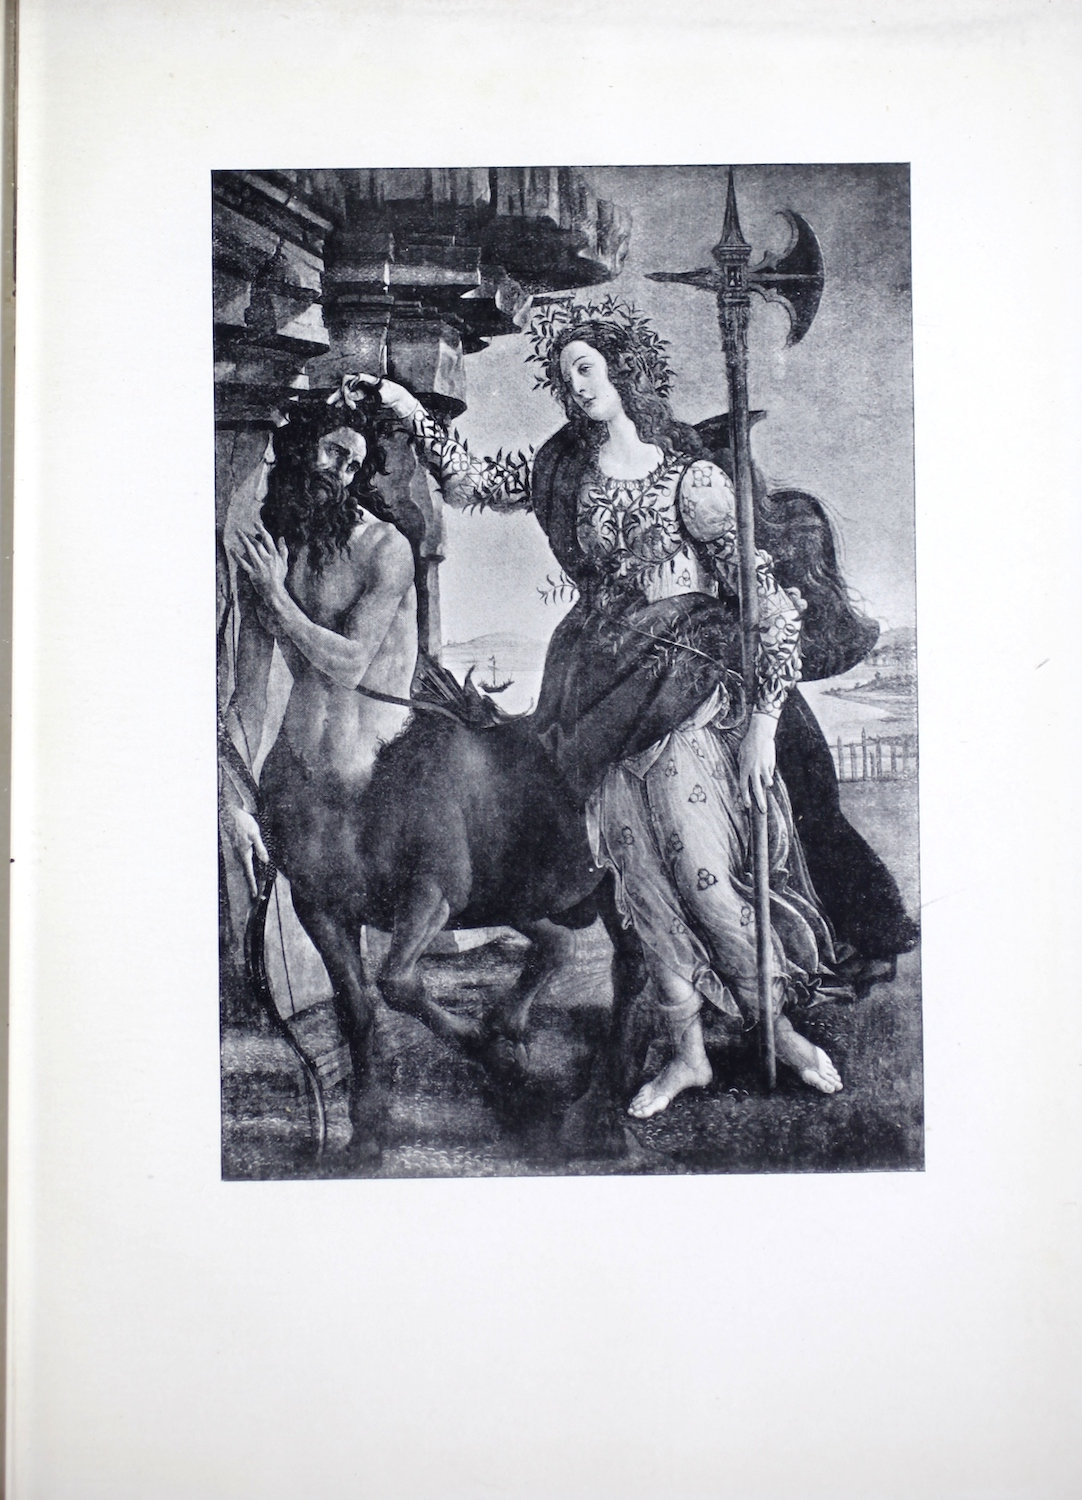 """This late- fifteenth-century tempera painting by Sandro Botticelli, described as """"a picture recently found"""" on the half-title page, is reproduced by halftone process engraving and is printed in portrait orientation. The mythological scene depicts two figures in a classical setting. On the left is the Centaur, a hybrid creature with a man's head, arms, and torso on a horse's body. Pallas Athena stands at his right, dominating the centre of the composition. As the dominant figure, she is both slightly in front and above the Centaur, who stands beside an edifice of stone pillars holding his cross bow in a downward position with his right arm, while his left arm is raised as if to protect himself from Athena. The goddess grips his hair with her extended right hand, while holding a large halberd (ceremonial battle ax) in her left. The Centaur appears to be submitting to her authority. Robed in white, with a green cloth around her hips, Athena is crowned with a laurel wreath; her long, golden-red hair flows down her back. Since Centaurs are associated with passion and sensuality, and Pallas Athena with wisdom, the painting is often read allegorically to represent reason subduing passion."""